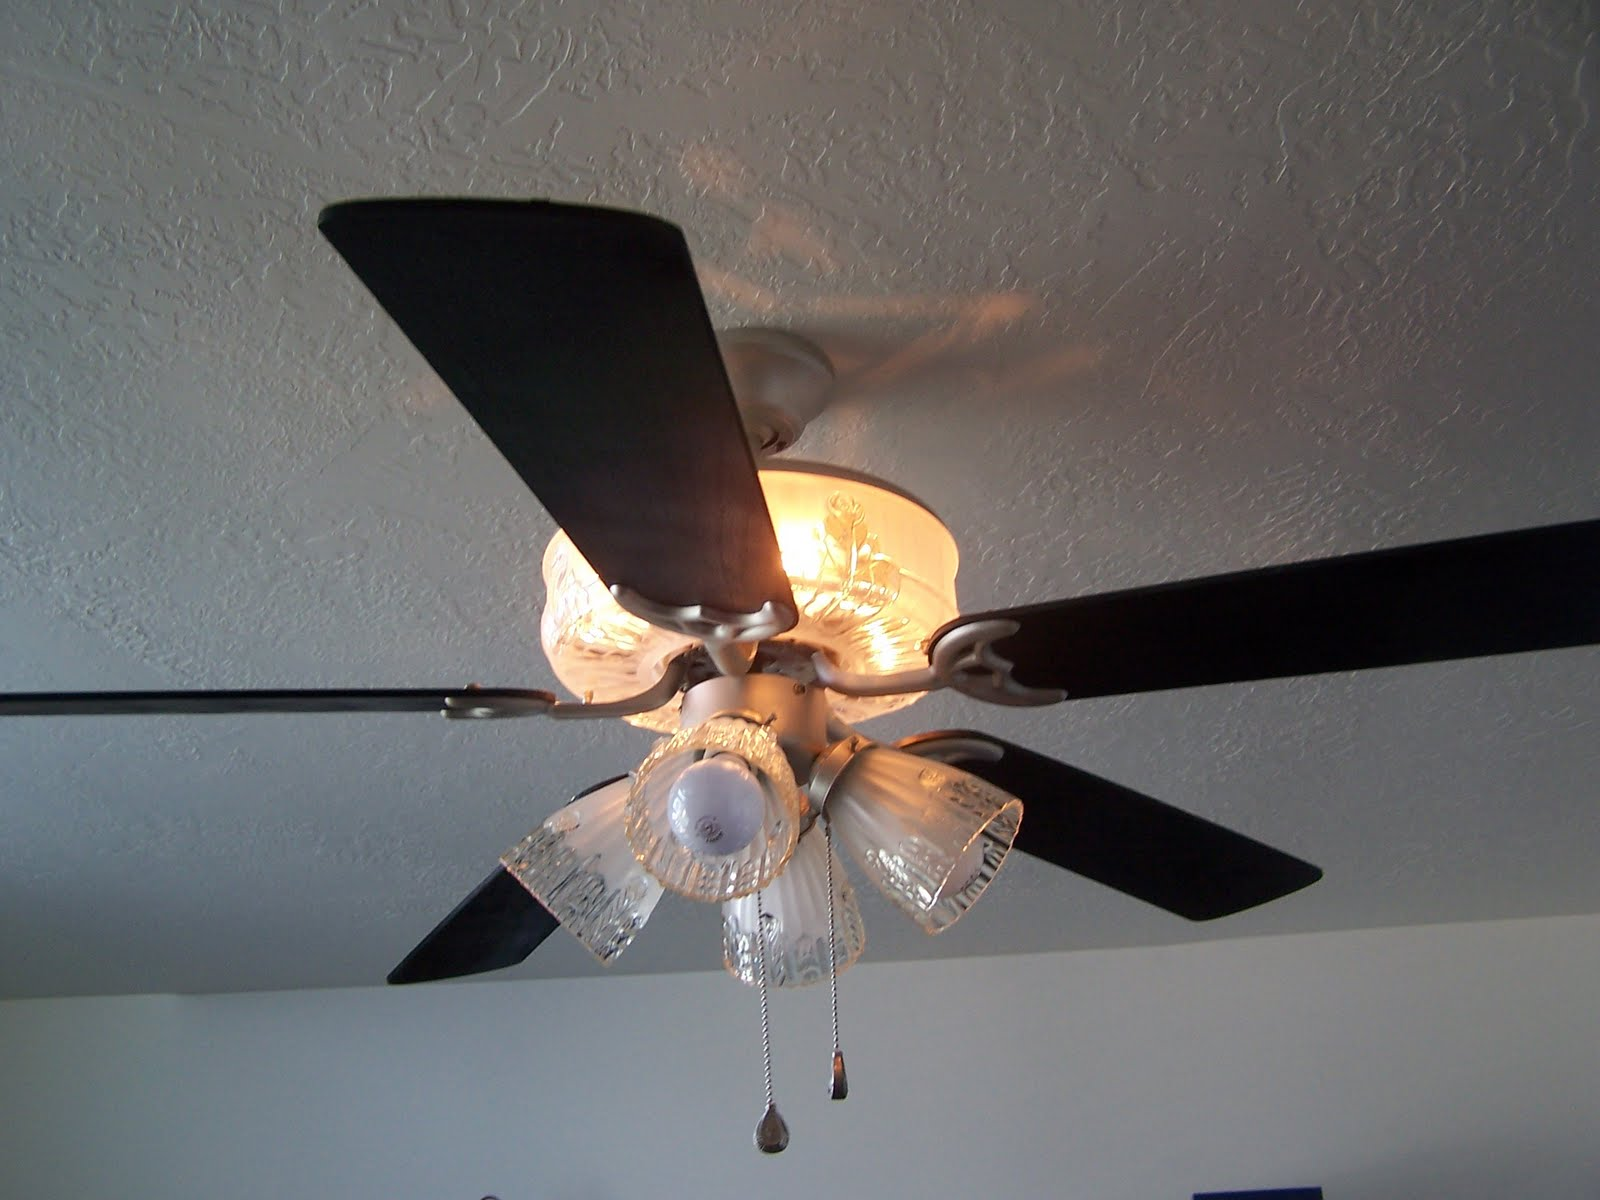 Batchelors Way: My $3 Ceiling Fan